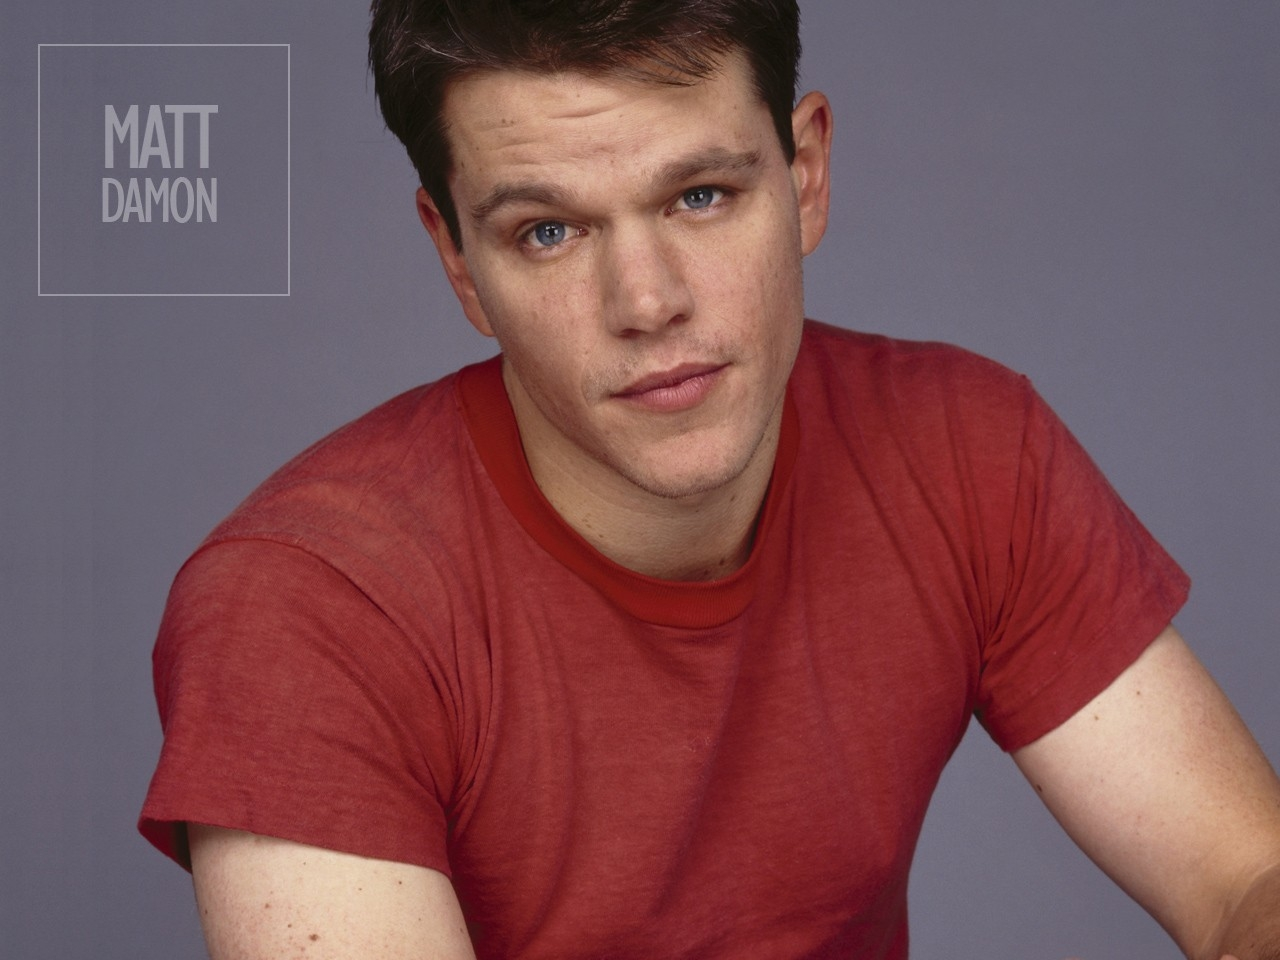 Wallpaper di Matt Damon in t-shirt rossa